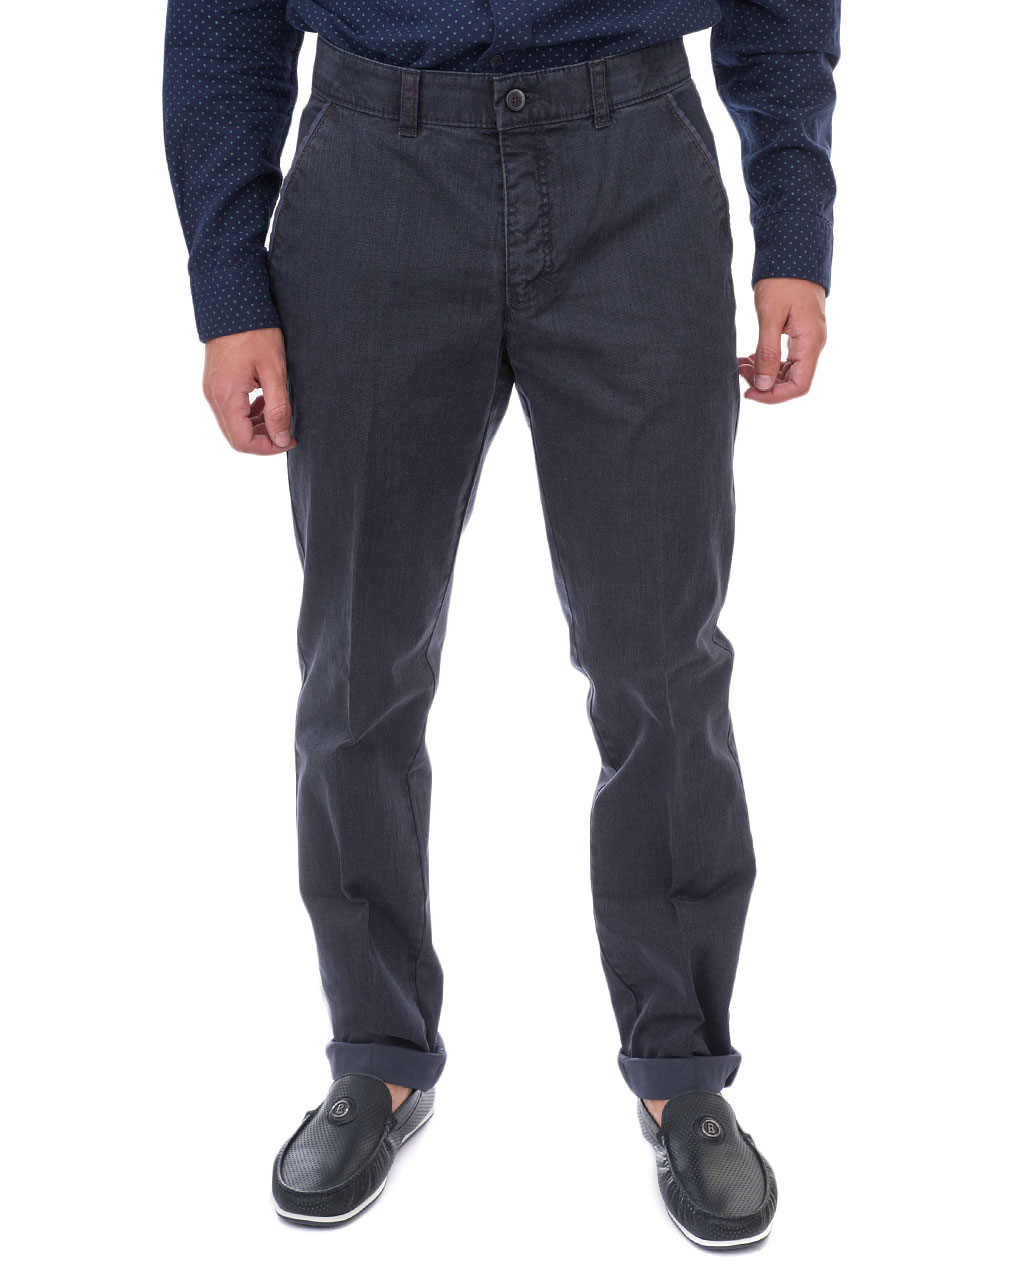 Men's trousers Garvey 6801-44/19-20 (4)